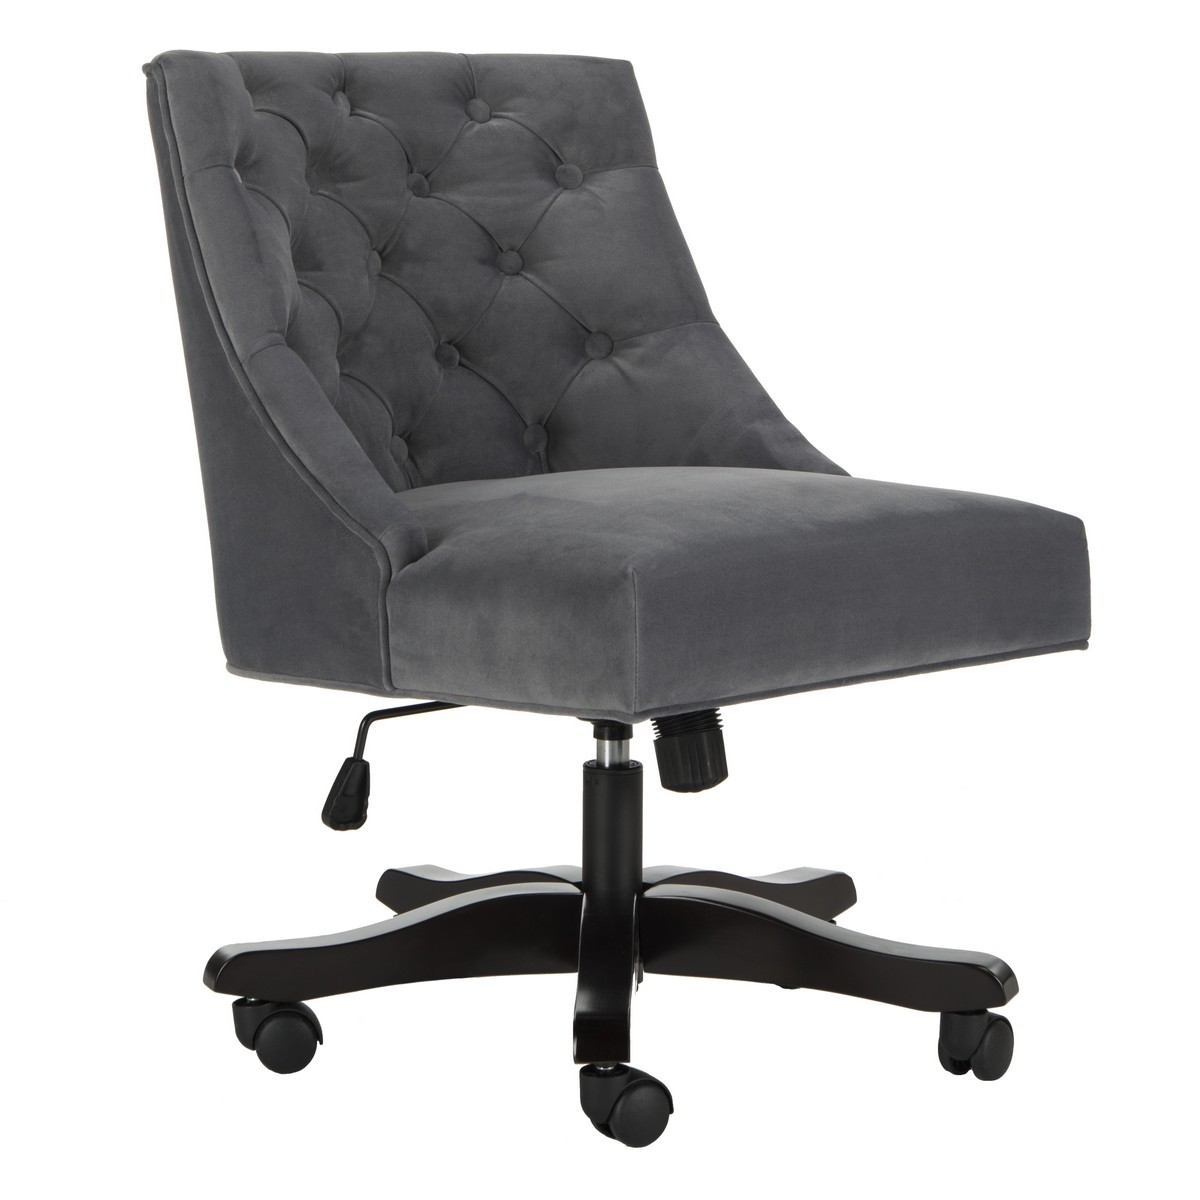 home more with decor check grey awesome furniture office good desk net chair on pin ideas at epic